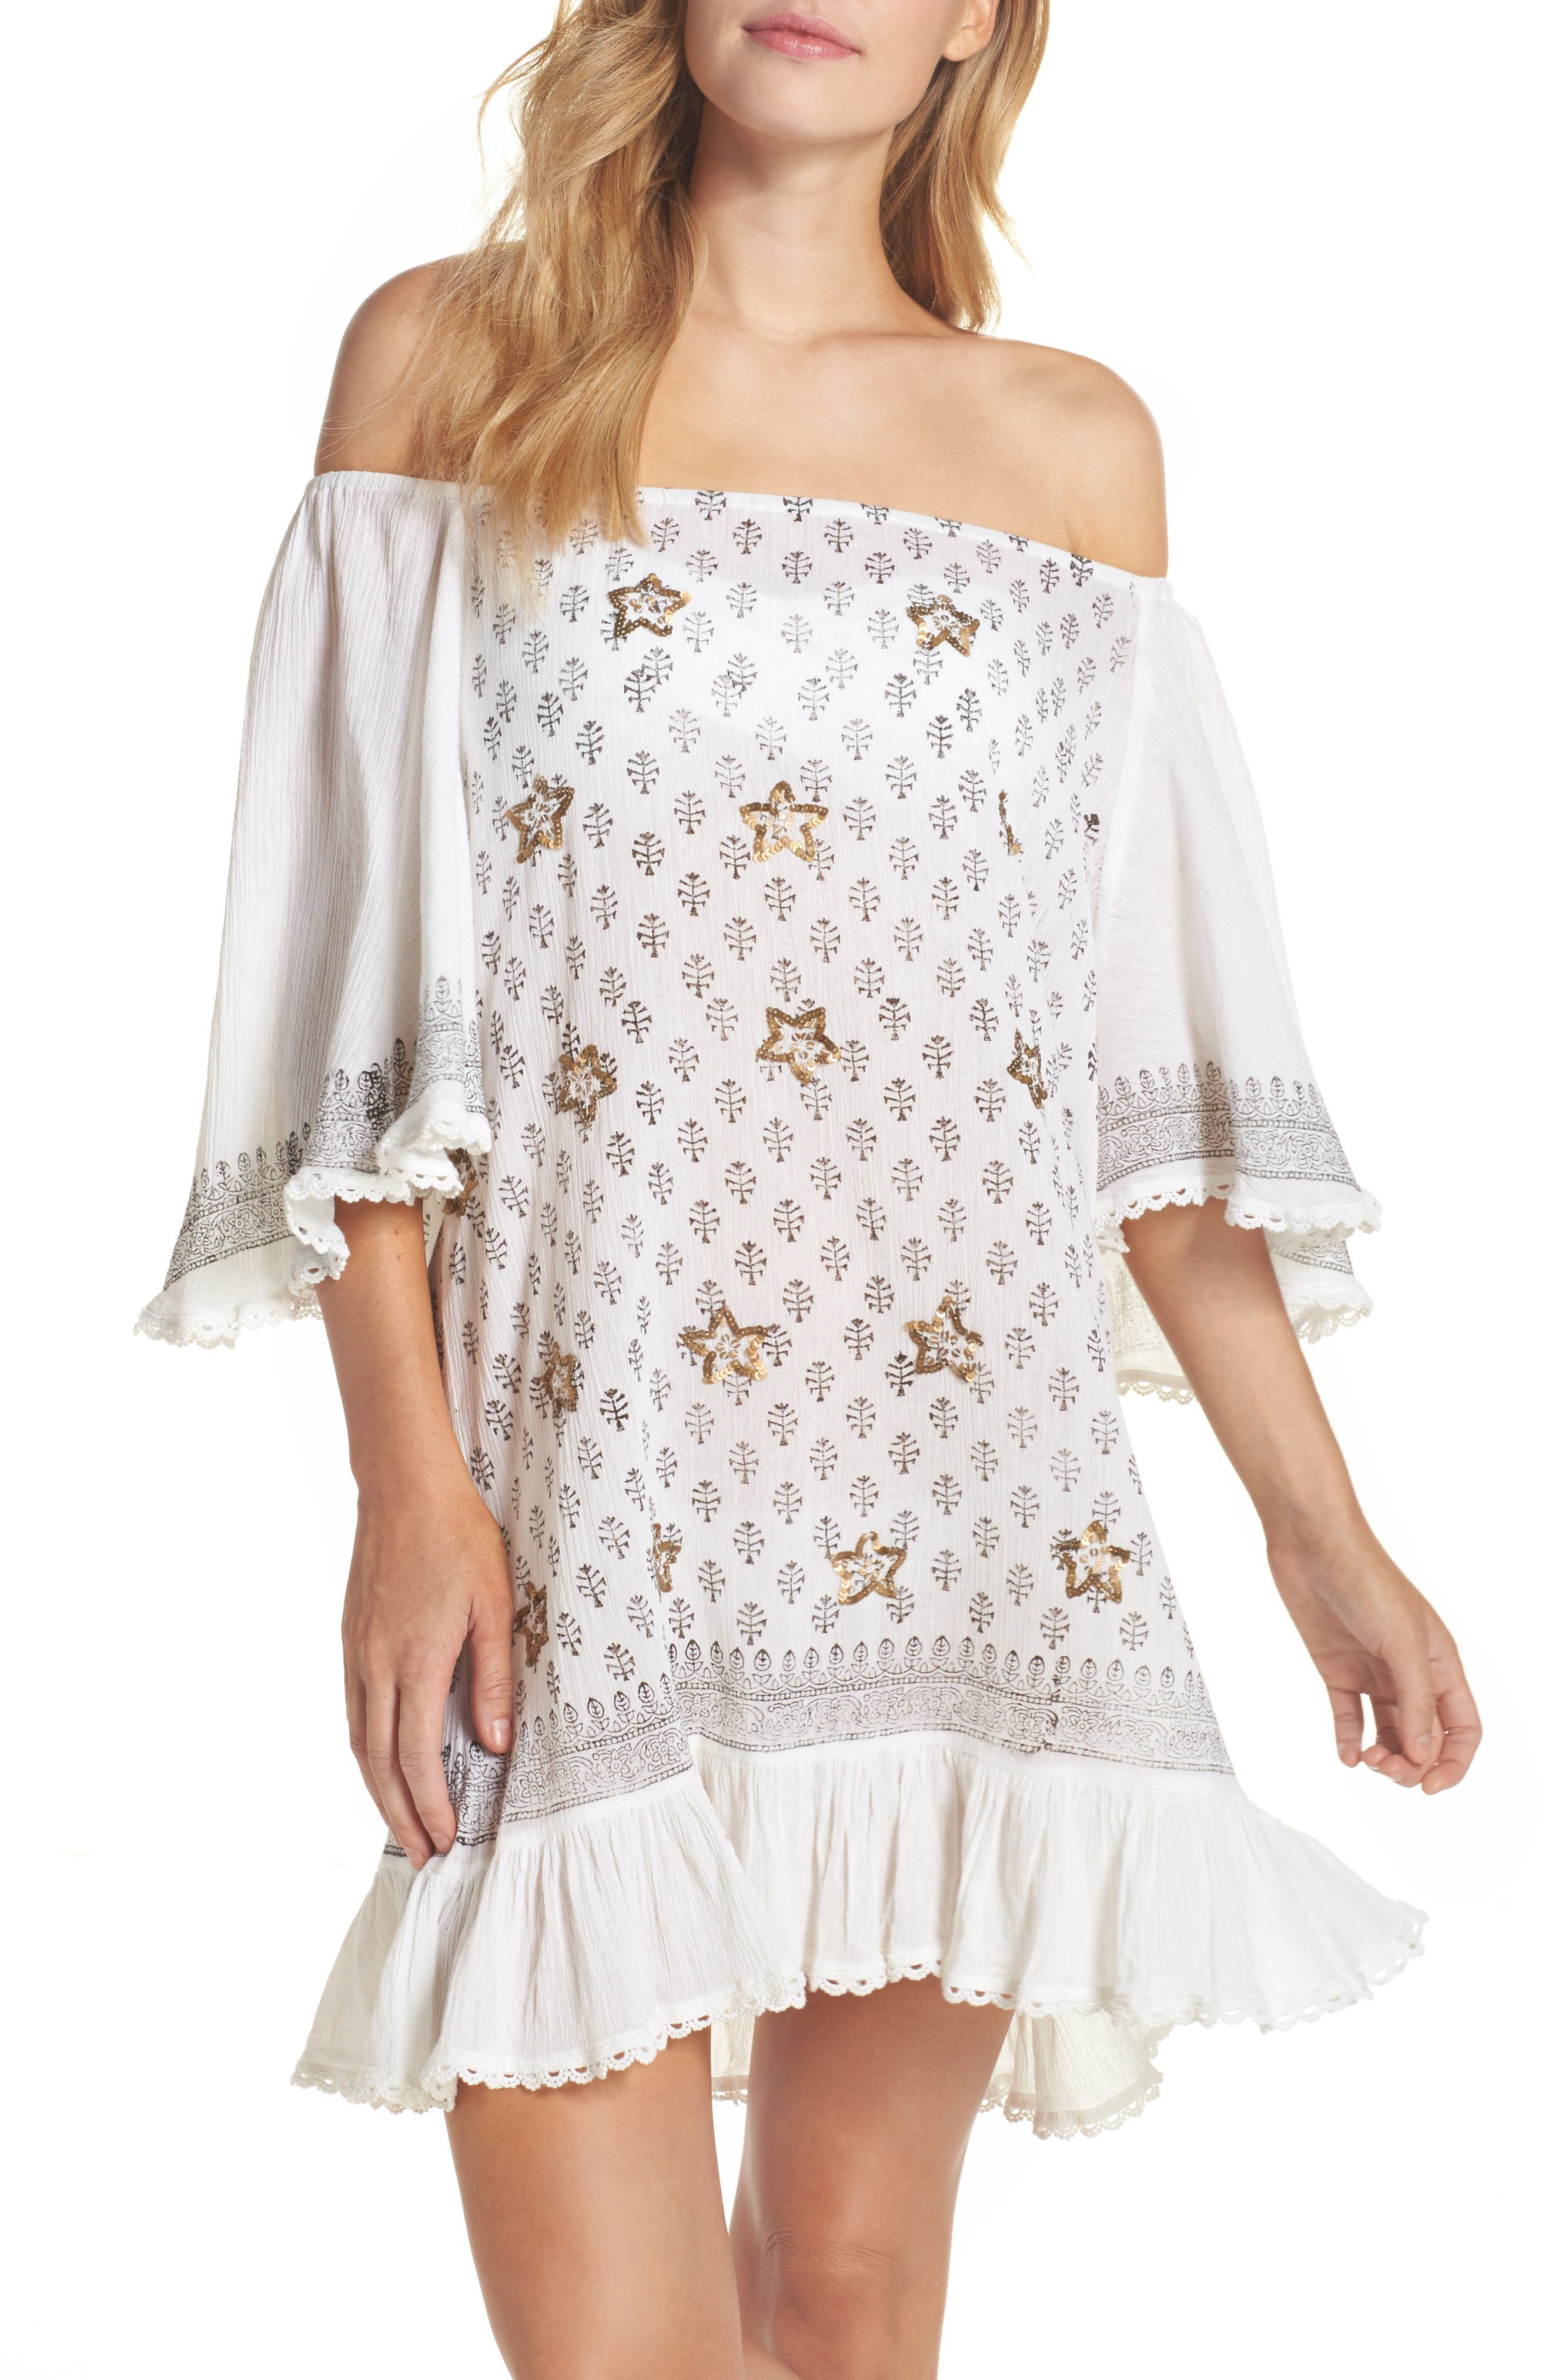 Dreamer Off the Shoulder Cover-Up Dress,                             Main thumbnail 1, color,                             100